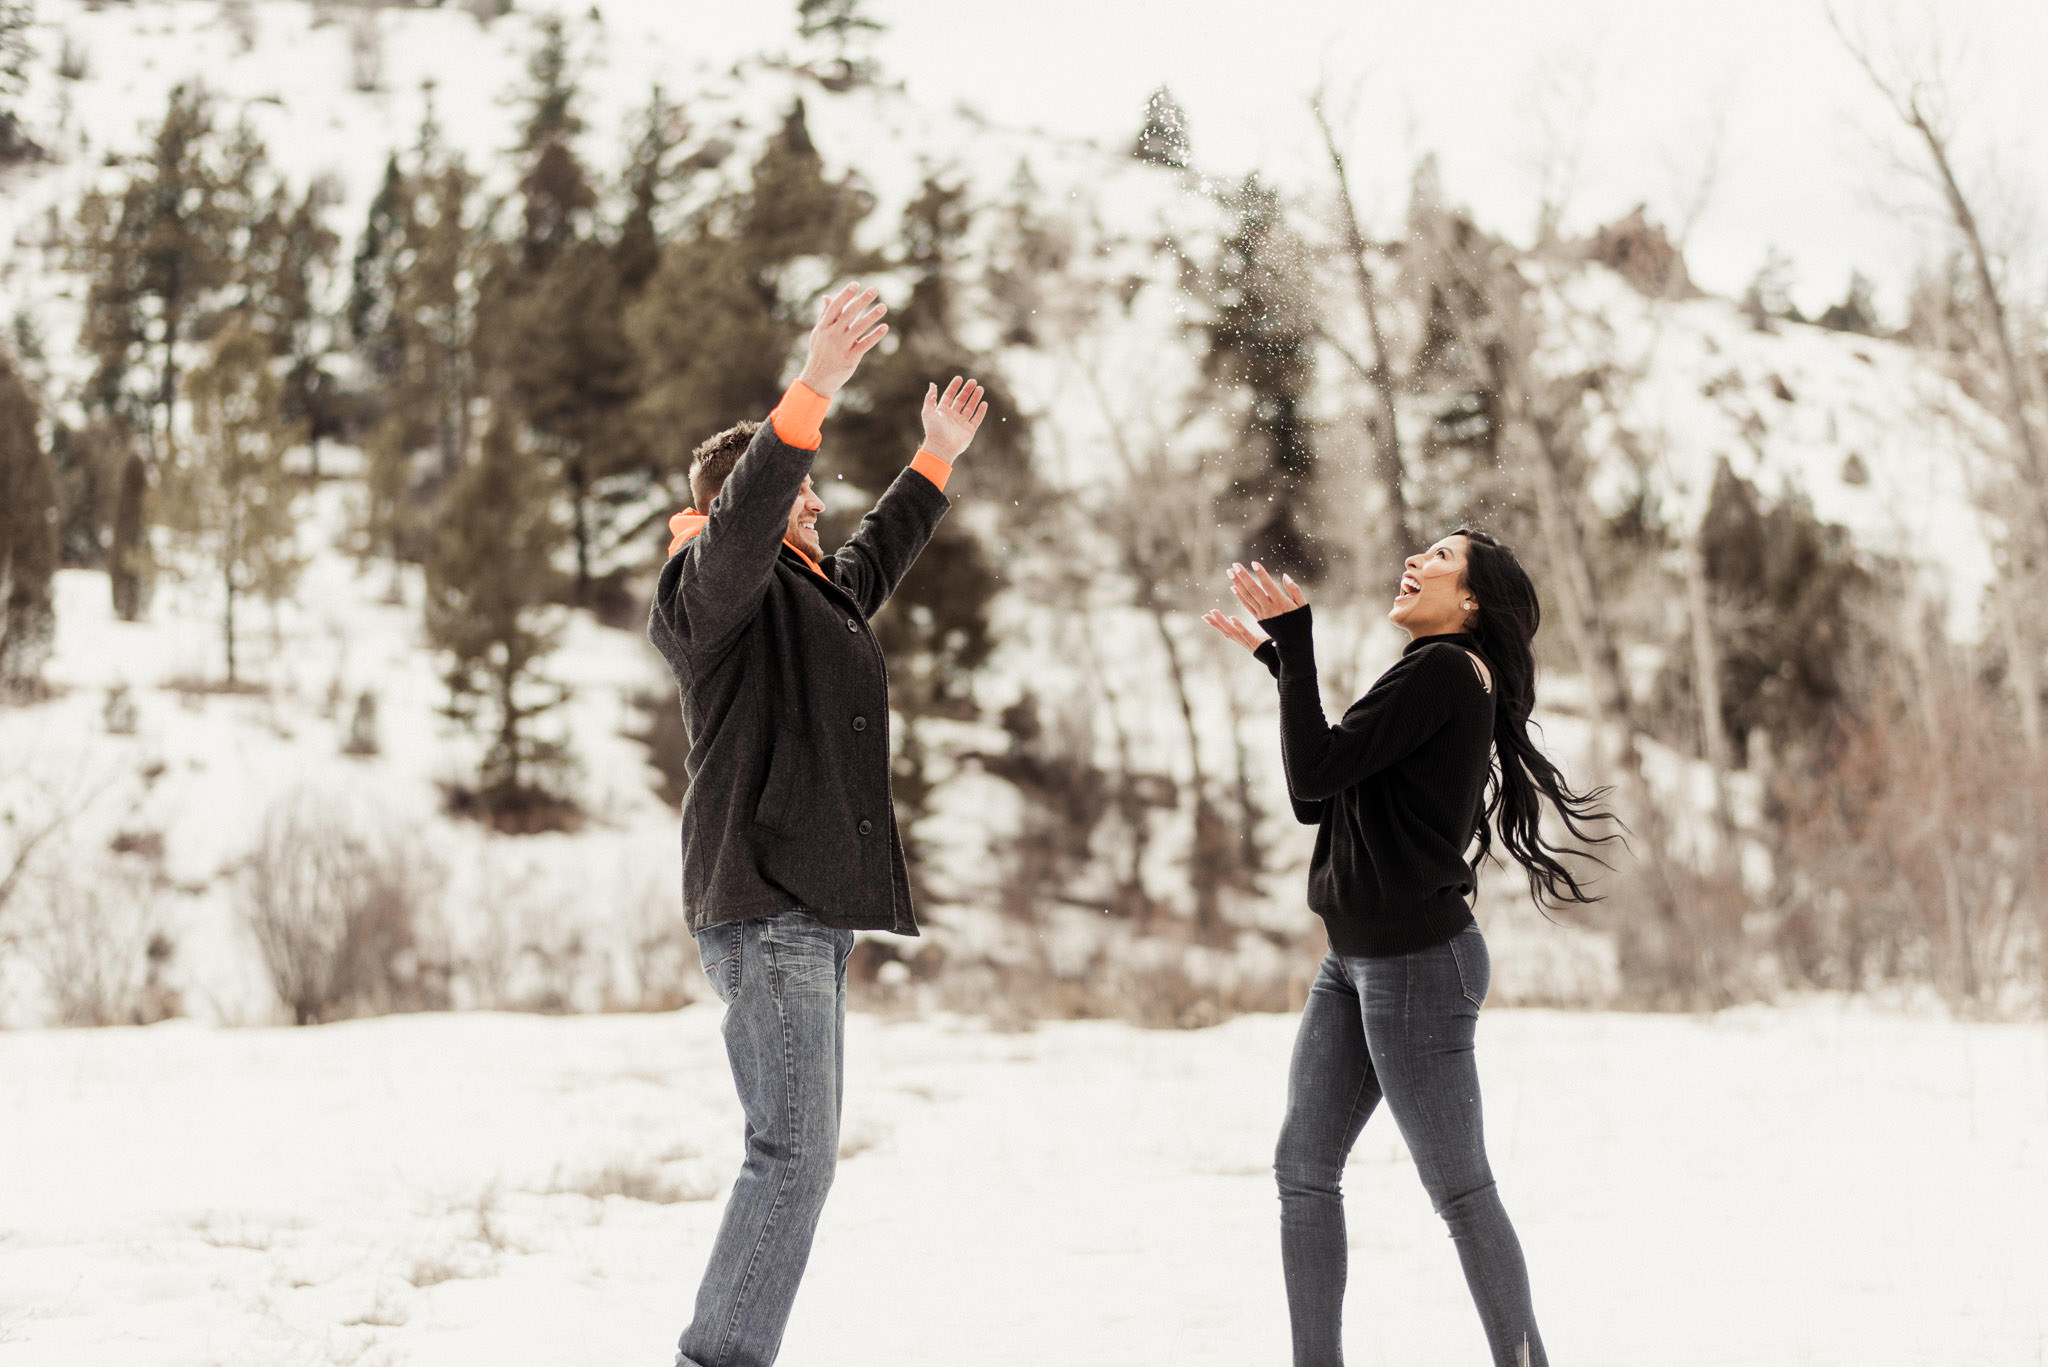 sandra-ryan-colorado-winter-snow-engagement-couples-valentines-red-houston-photographer-sm-38.jpg